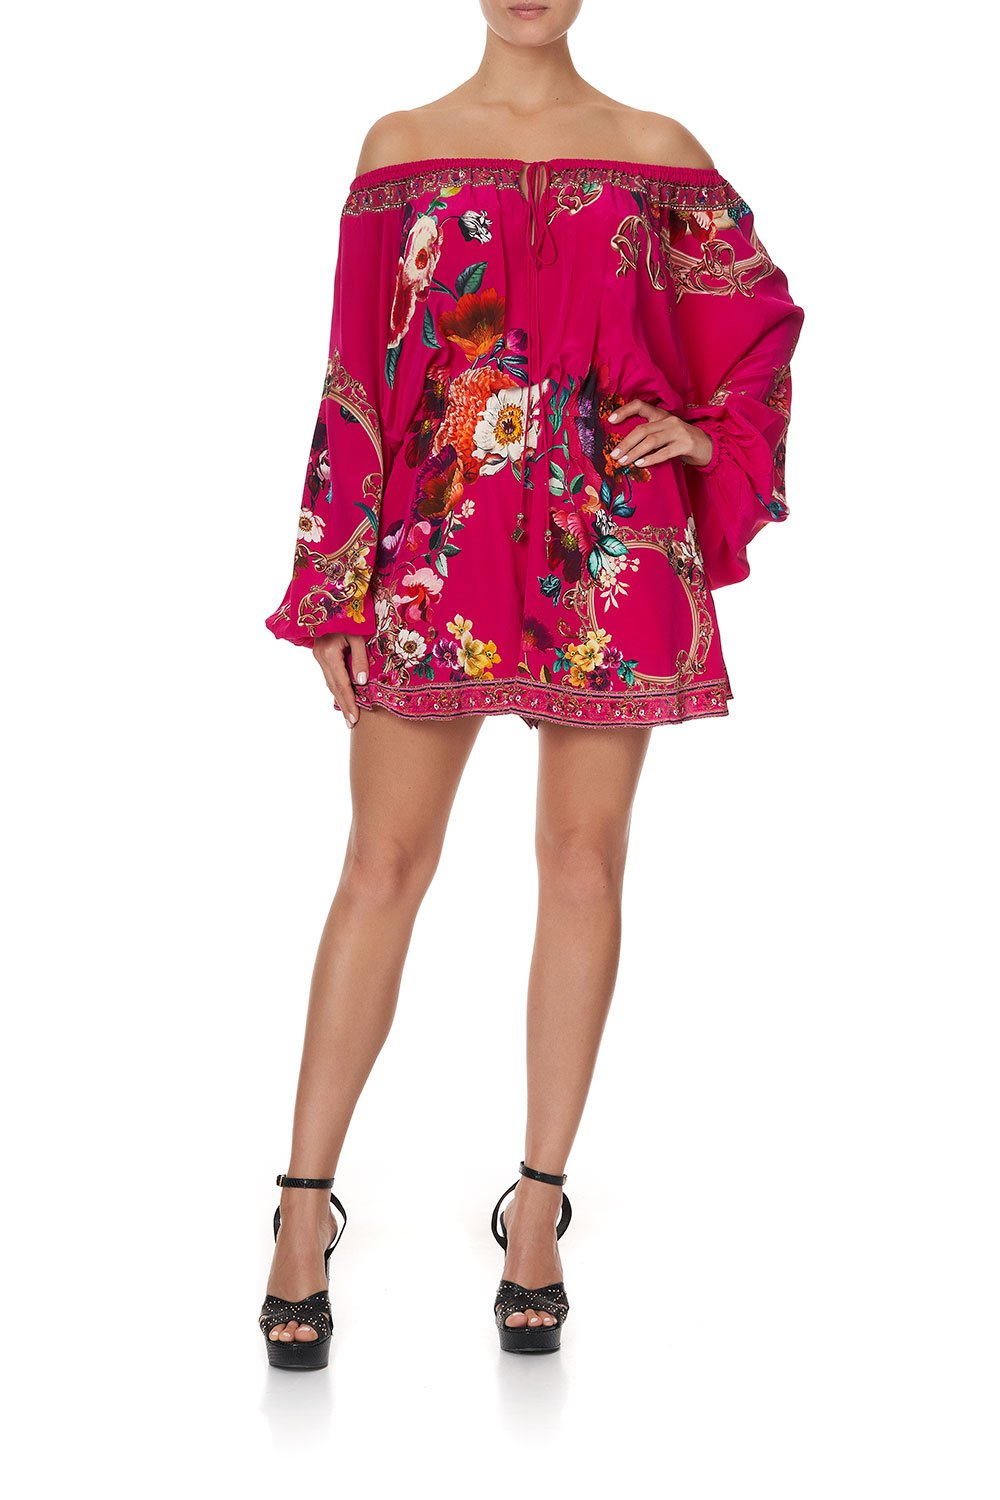 BLOUSON SLEEVE PLAYSUIT APPLE EYED